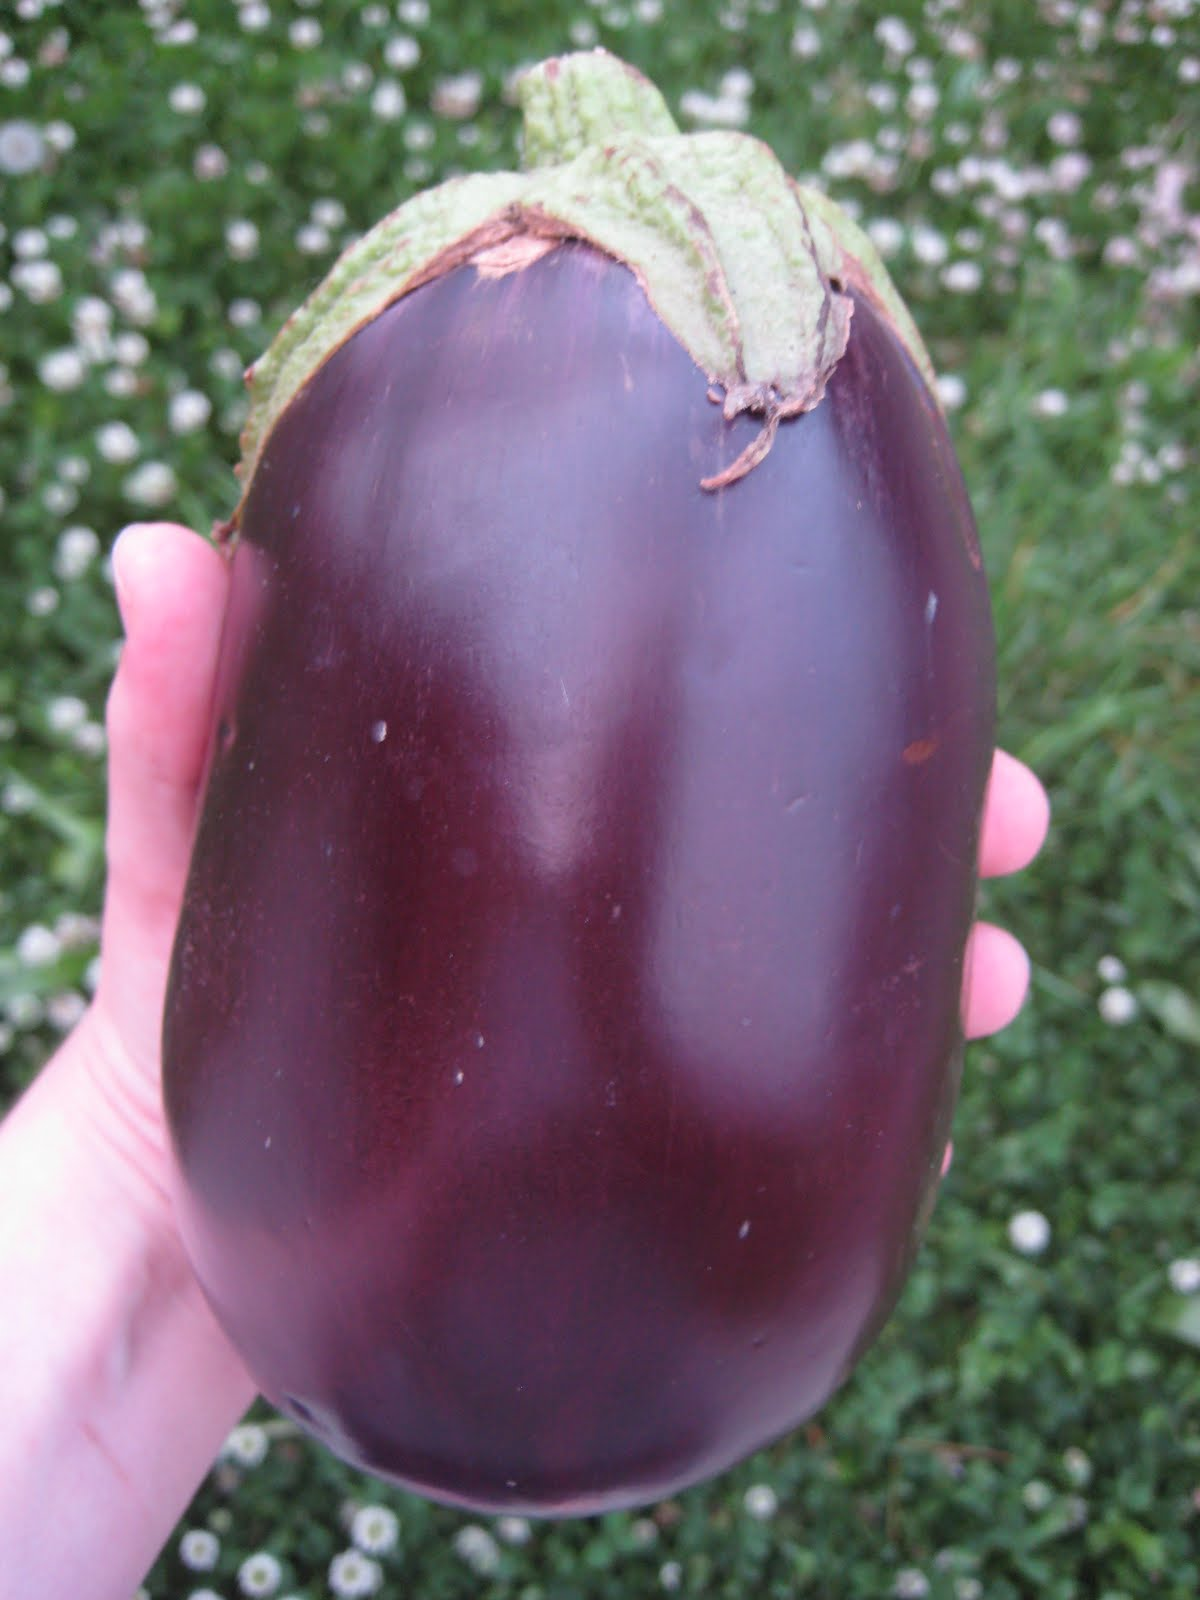 Anktangle: Farm Fresh: The Eggplant!